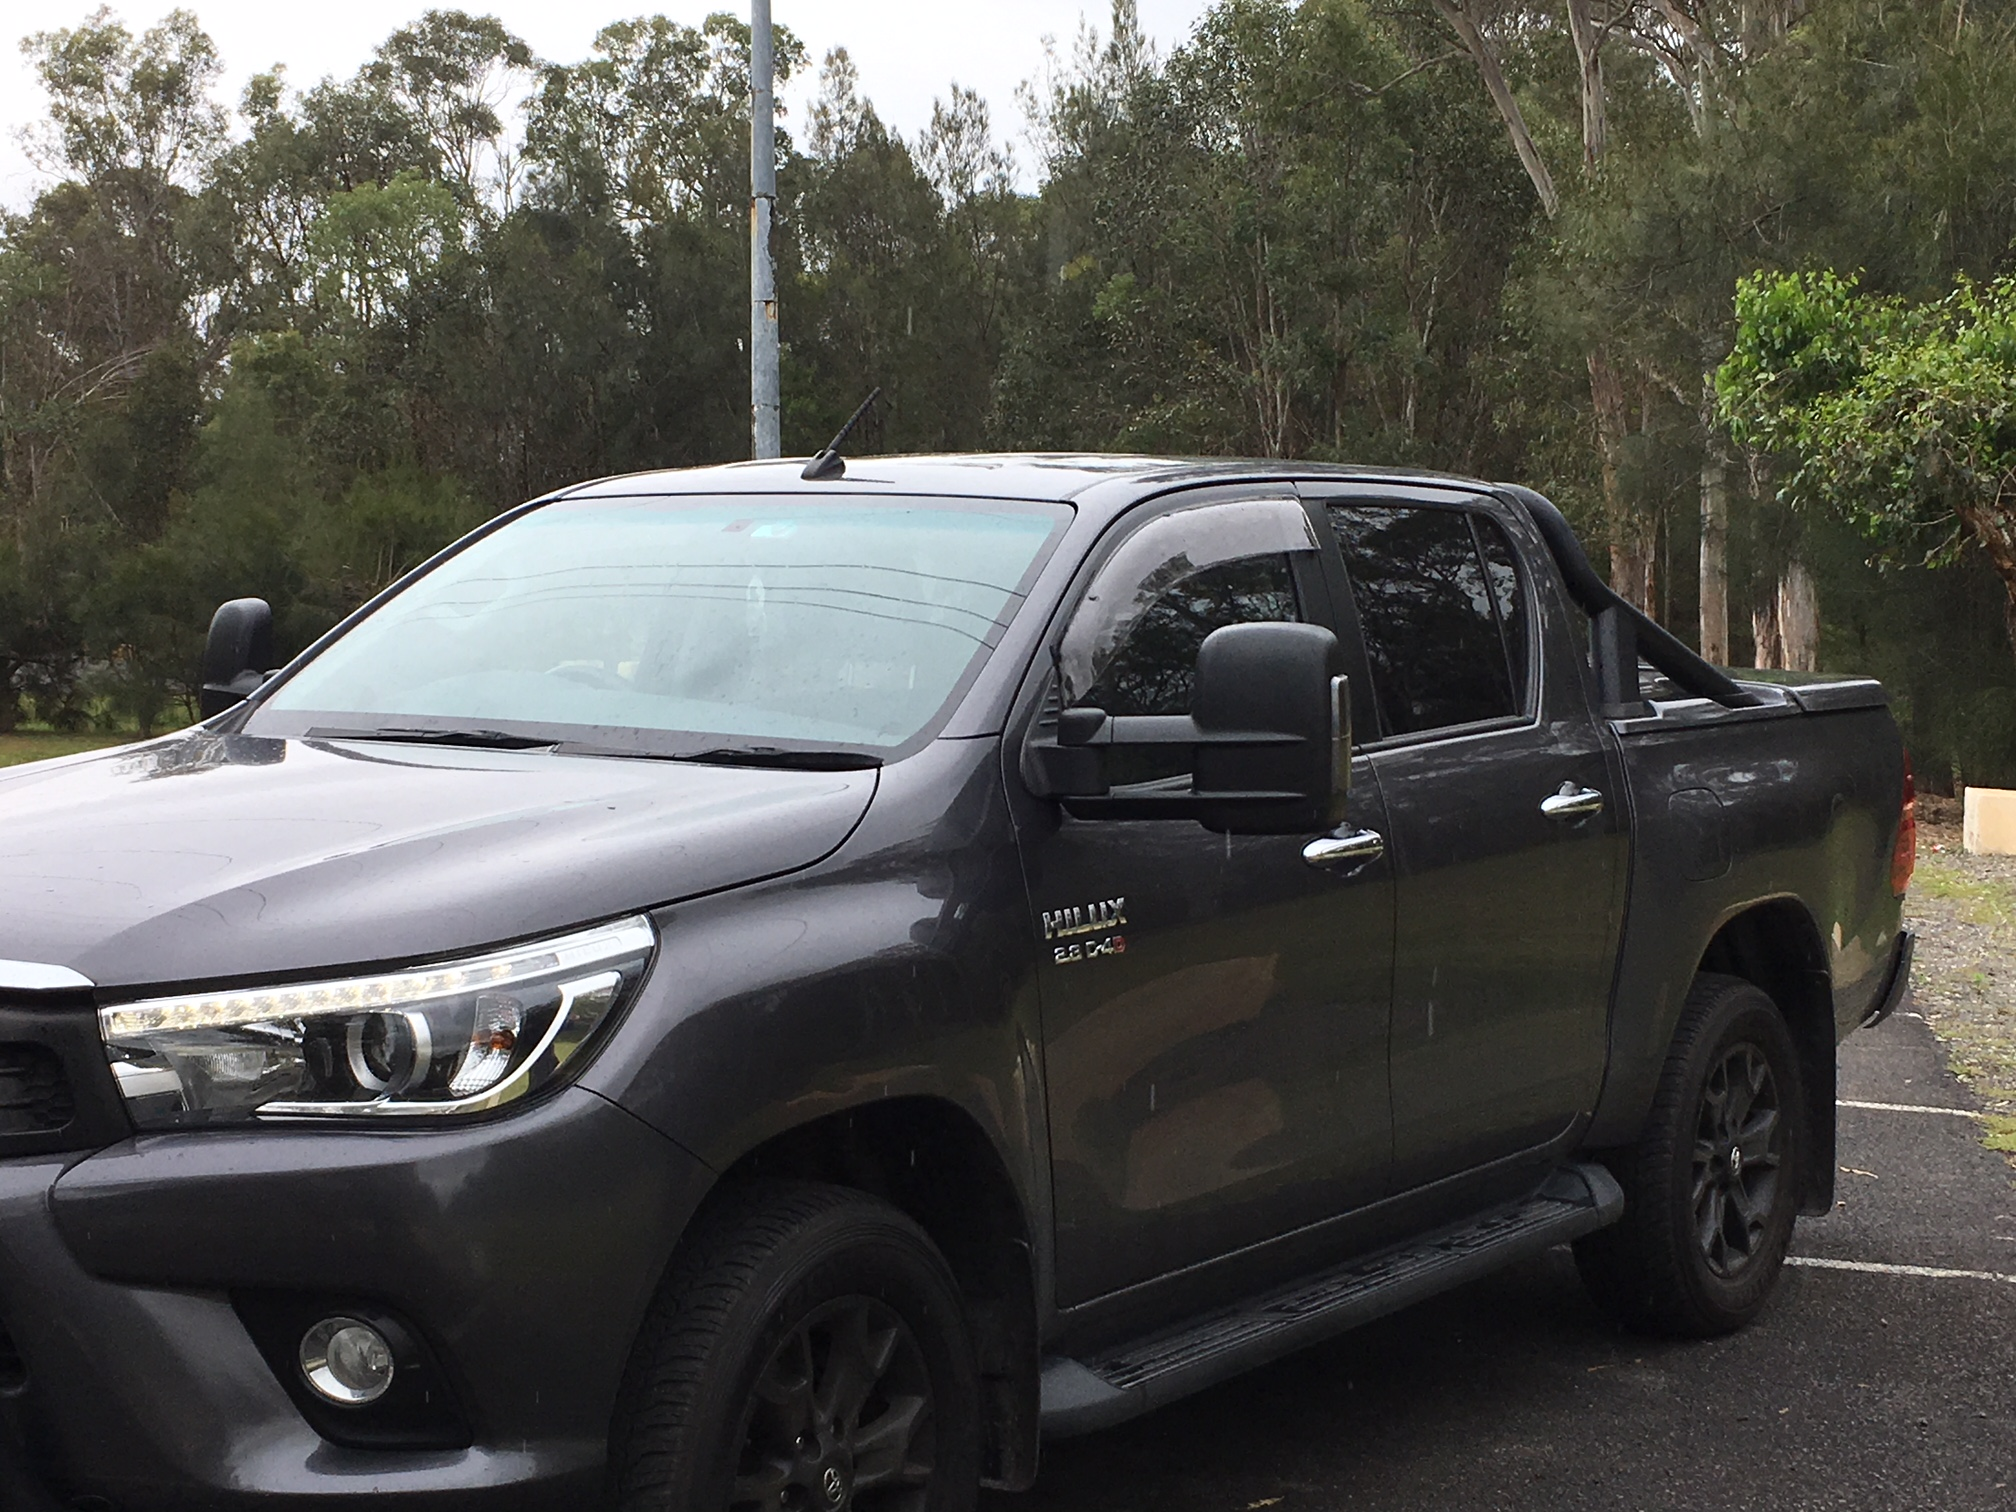 TOYOTA HILUX EXTENDABLE TOWING MIRRORS